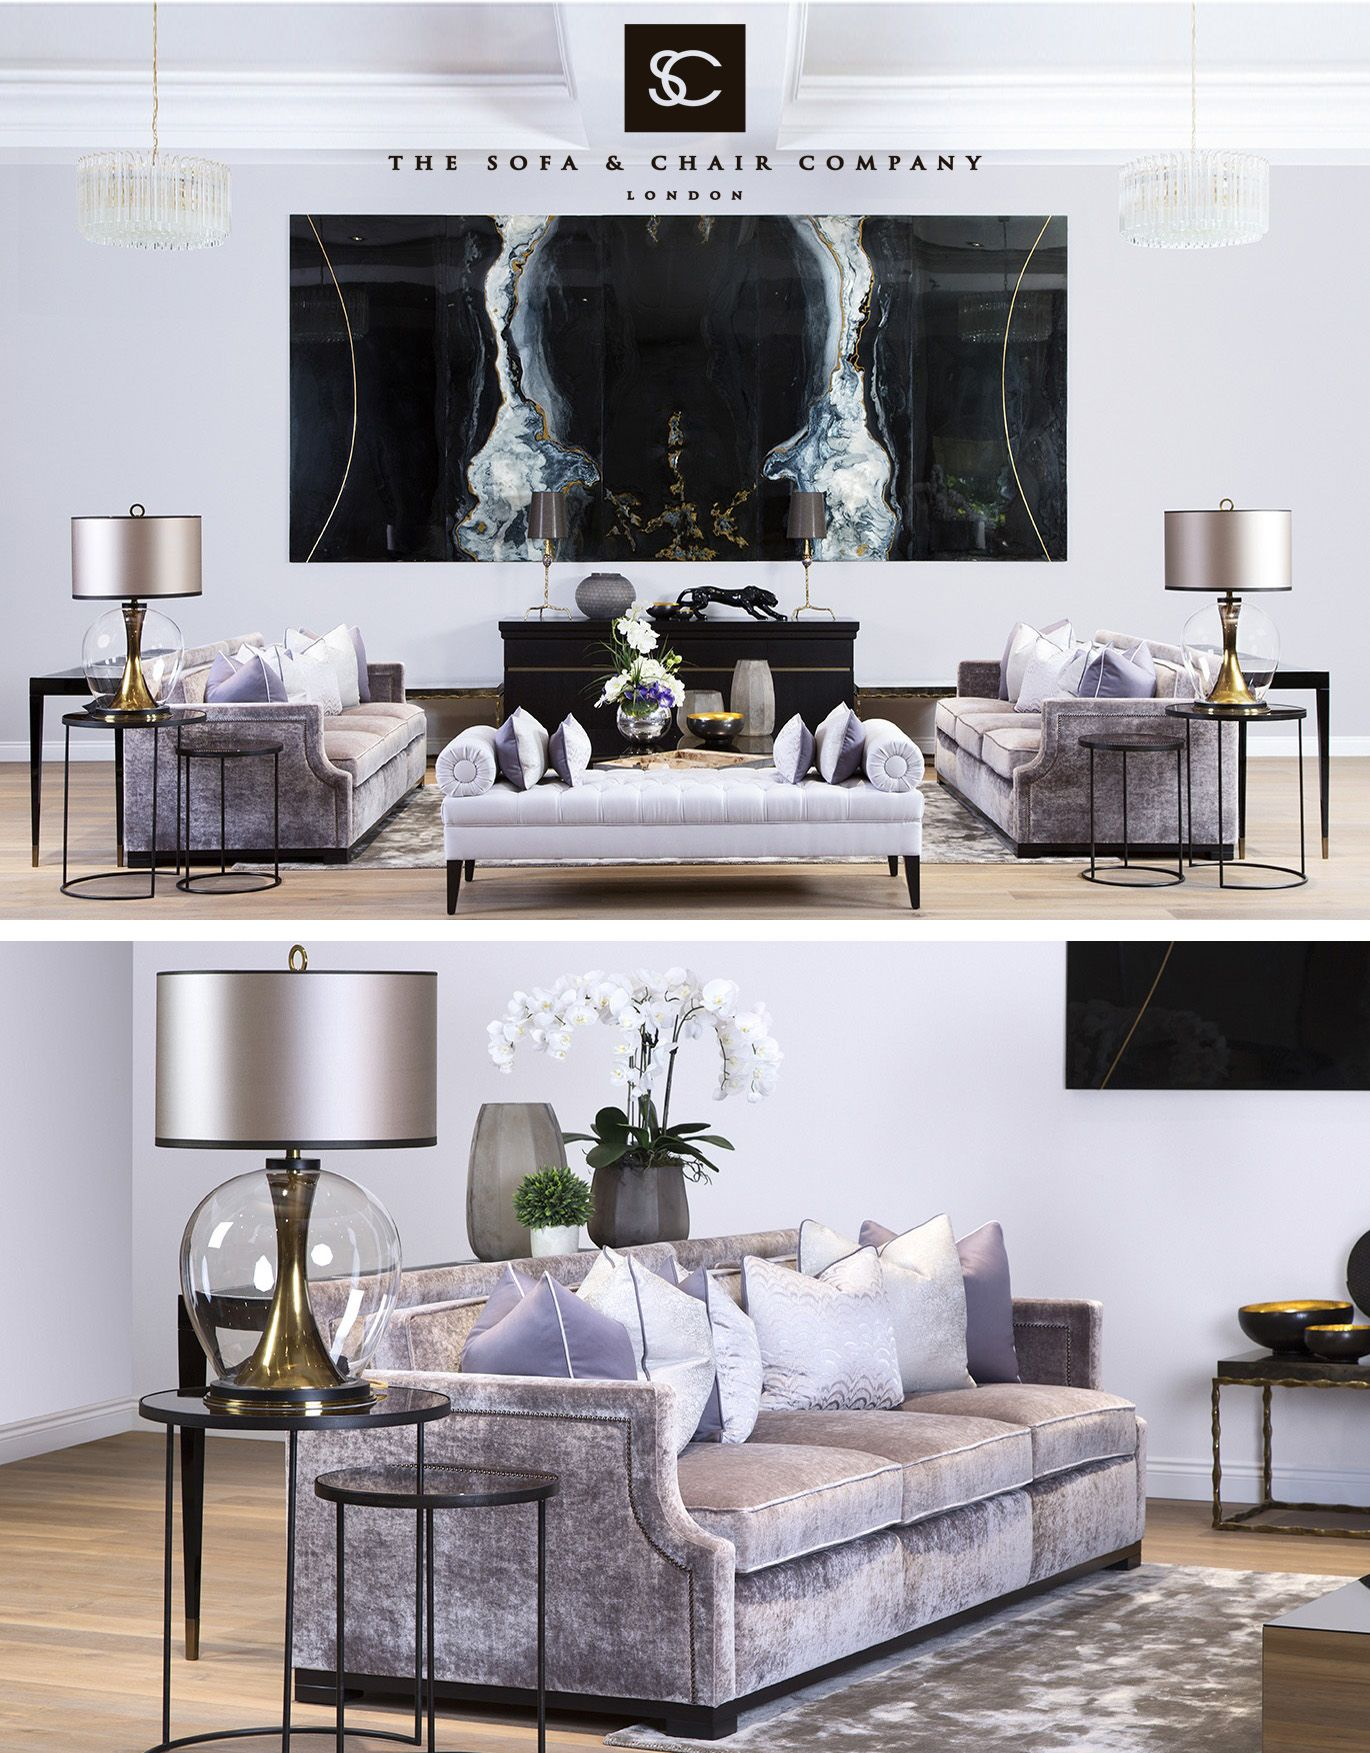 Gorgeous living rooms living room idea londons largest luxury showroom a one stop destination for interiors the sofa chair company